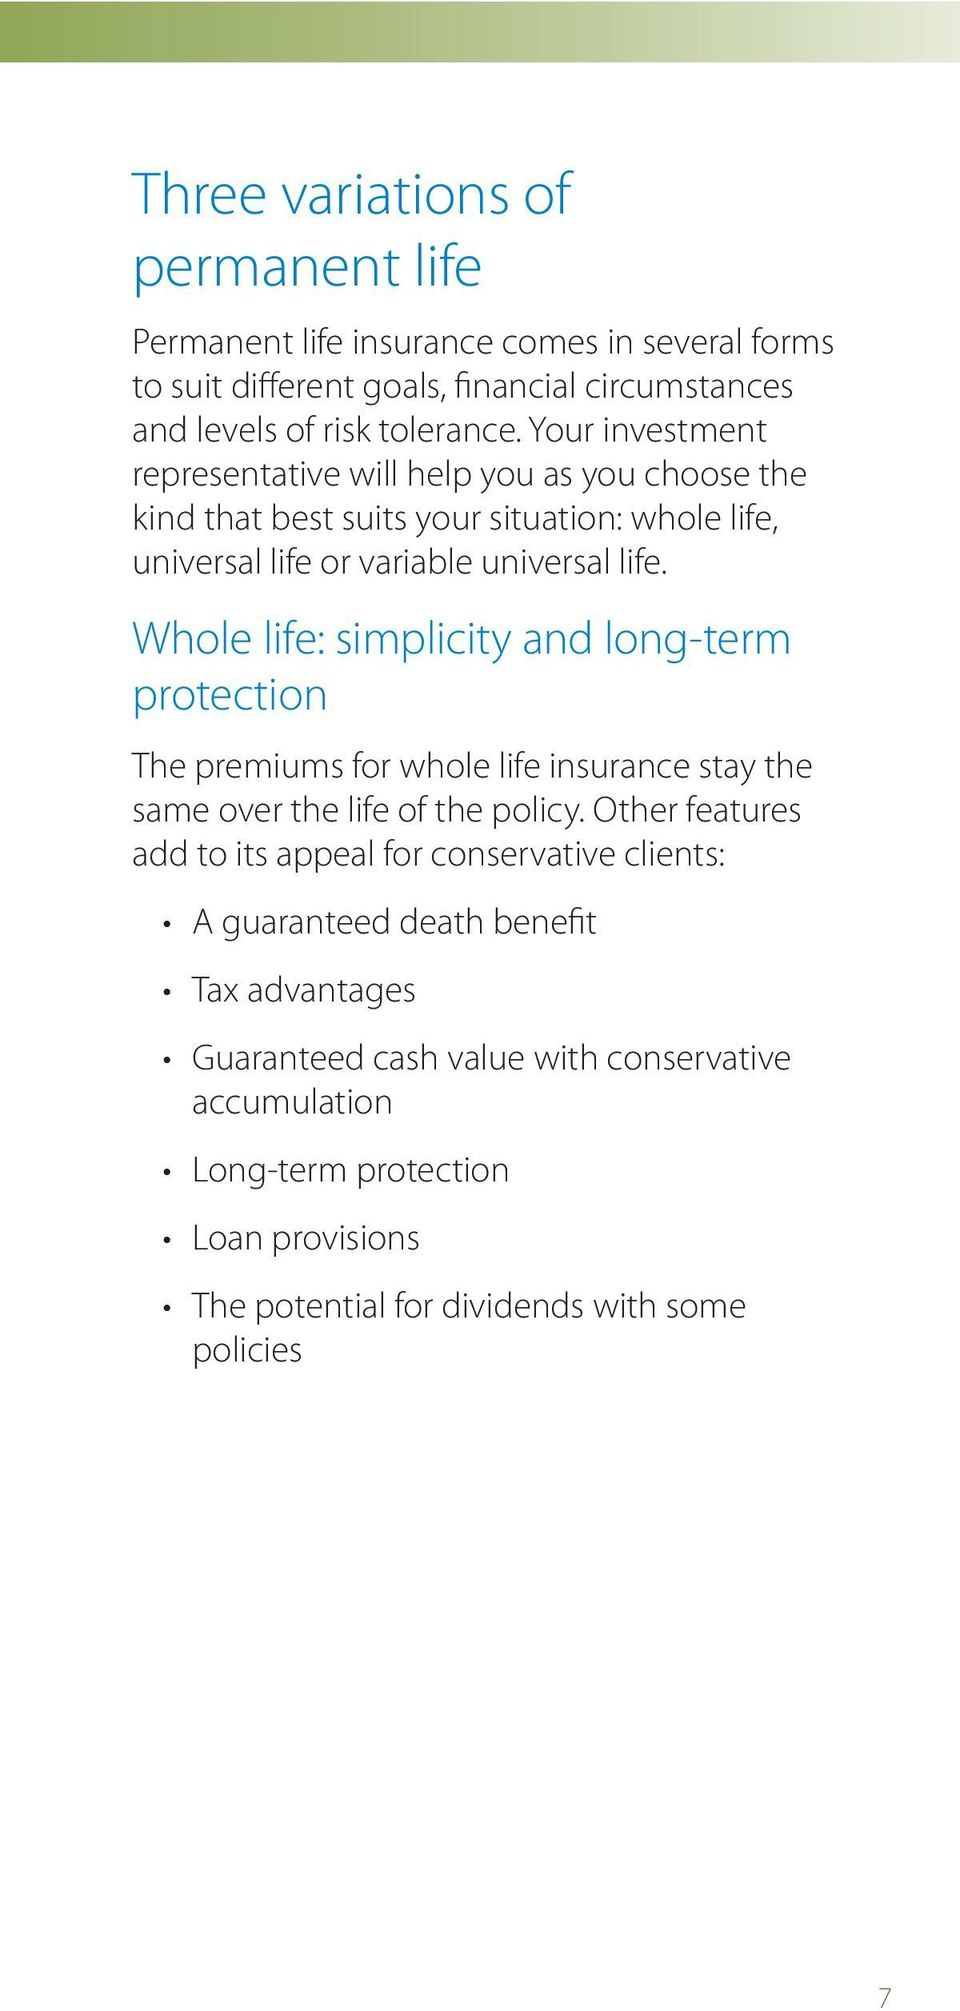 Whole life: simplicity and long-term protection The premiums for whole life insurance stay the same over the life of the policy.